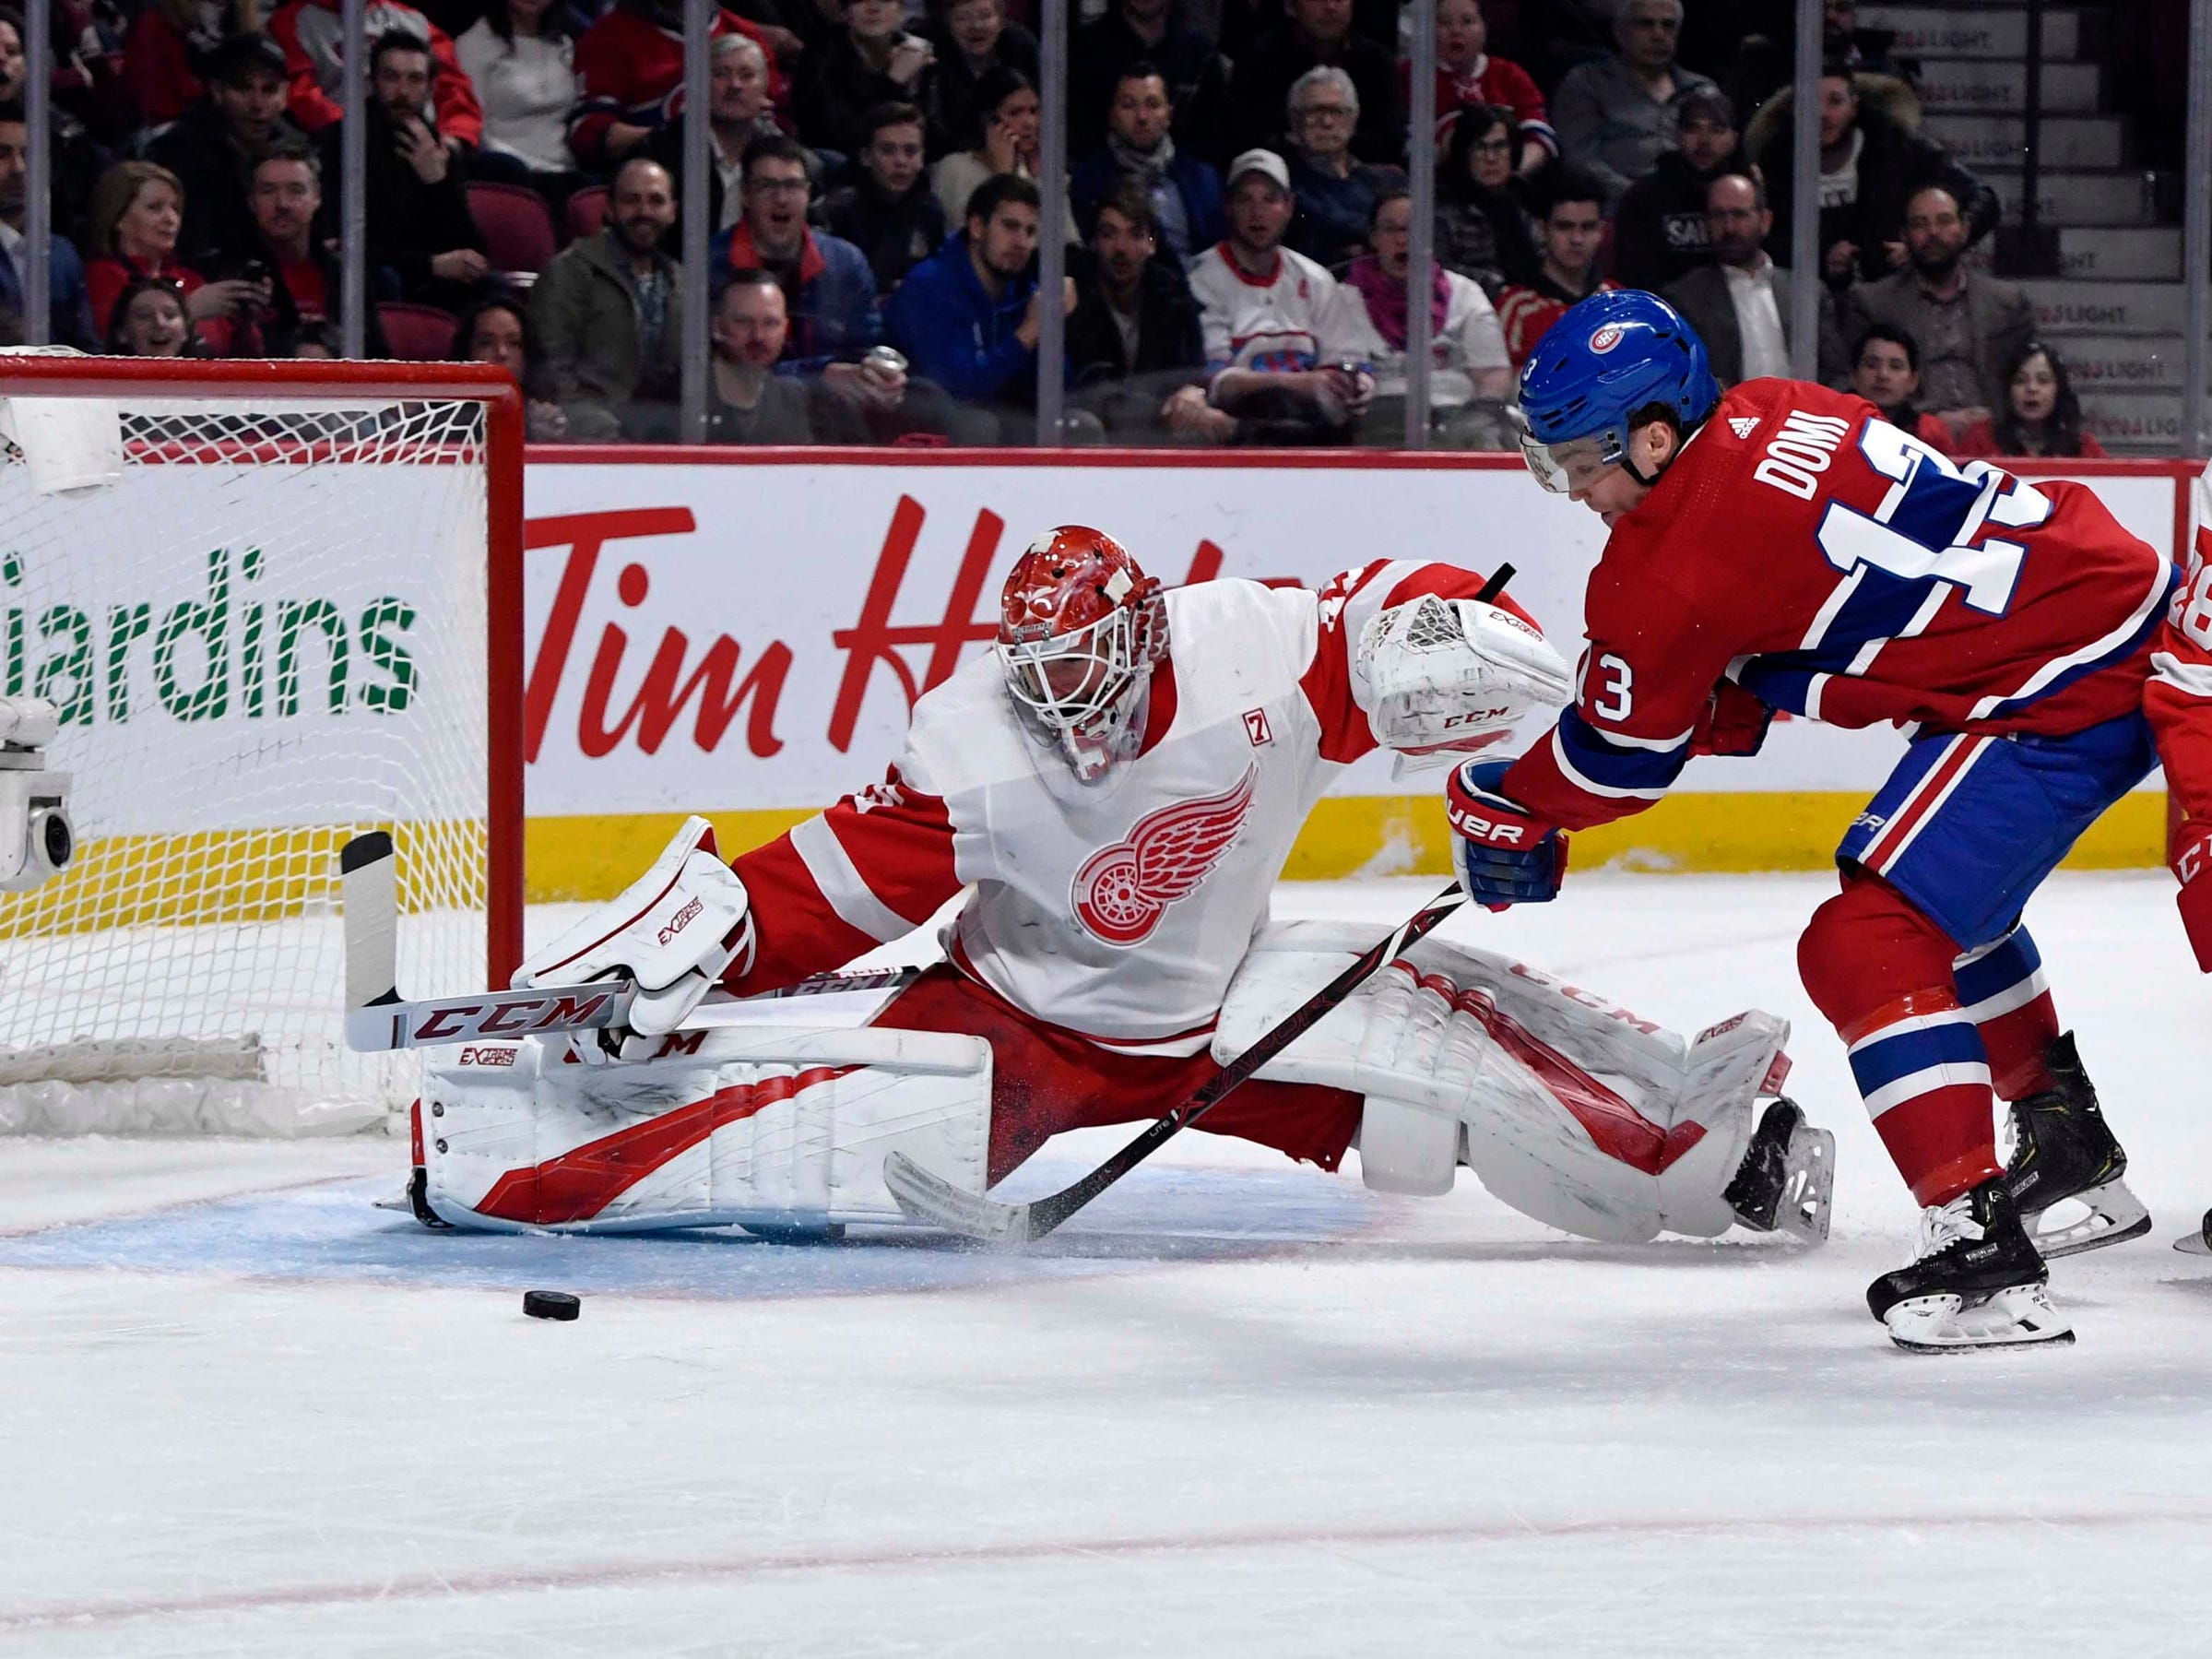 Detroit Red Wings goalie Jonathan Bernier stops Montreal Canadiens forward Max Domi during the first period at the Bell Centre, March 12, 2019 in Montreal.